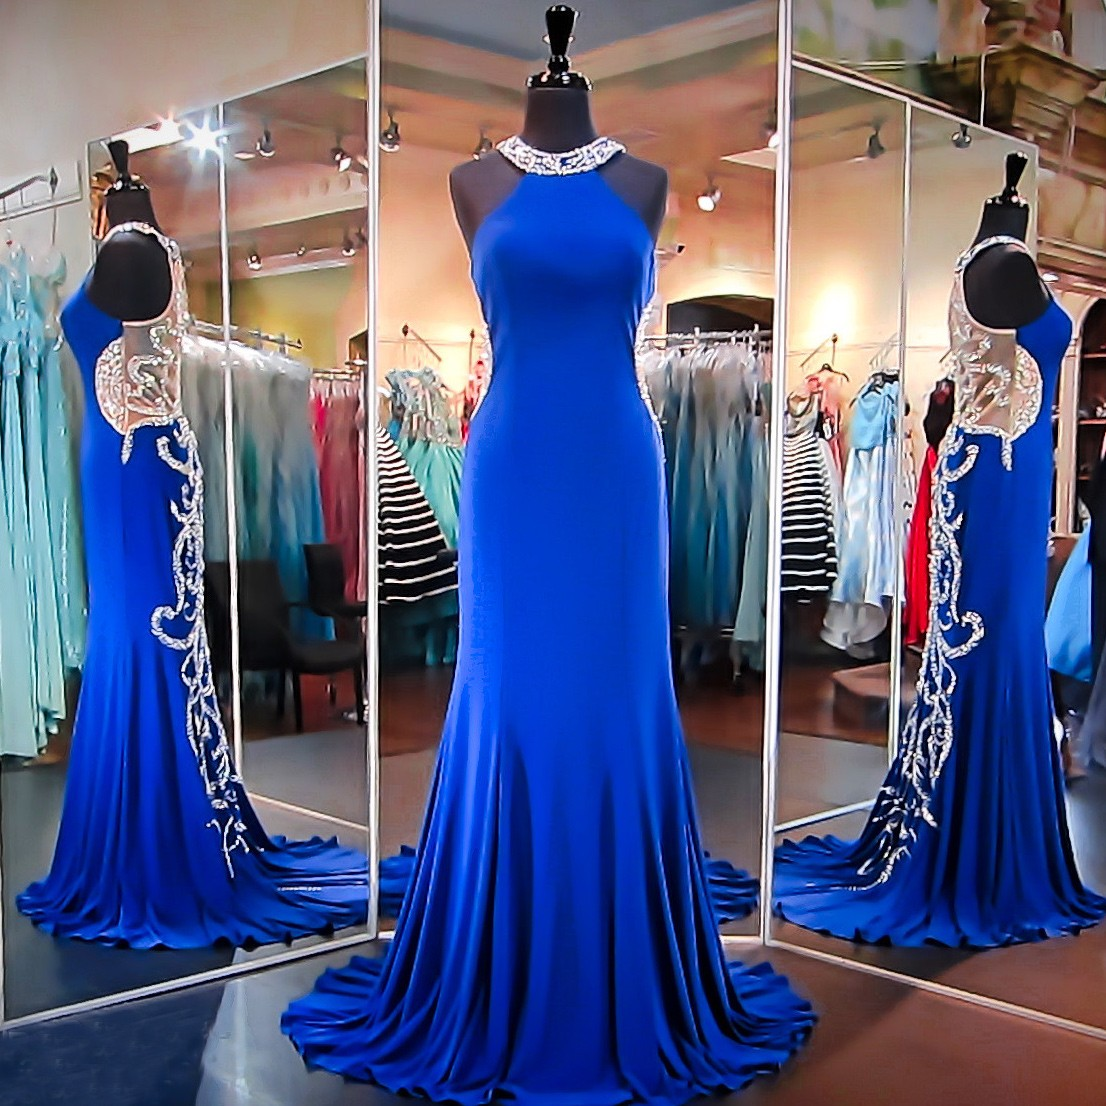 Luxurious Long Prom Dress - Royal Blue Sheath Halter with Beaded